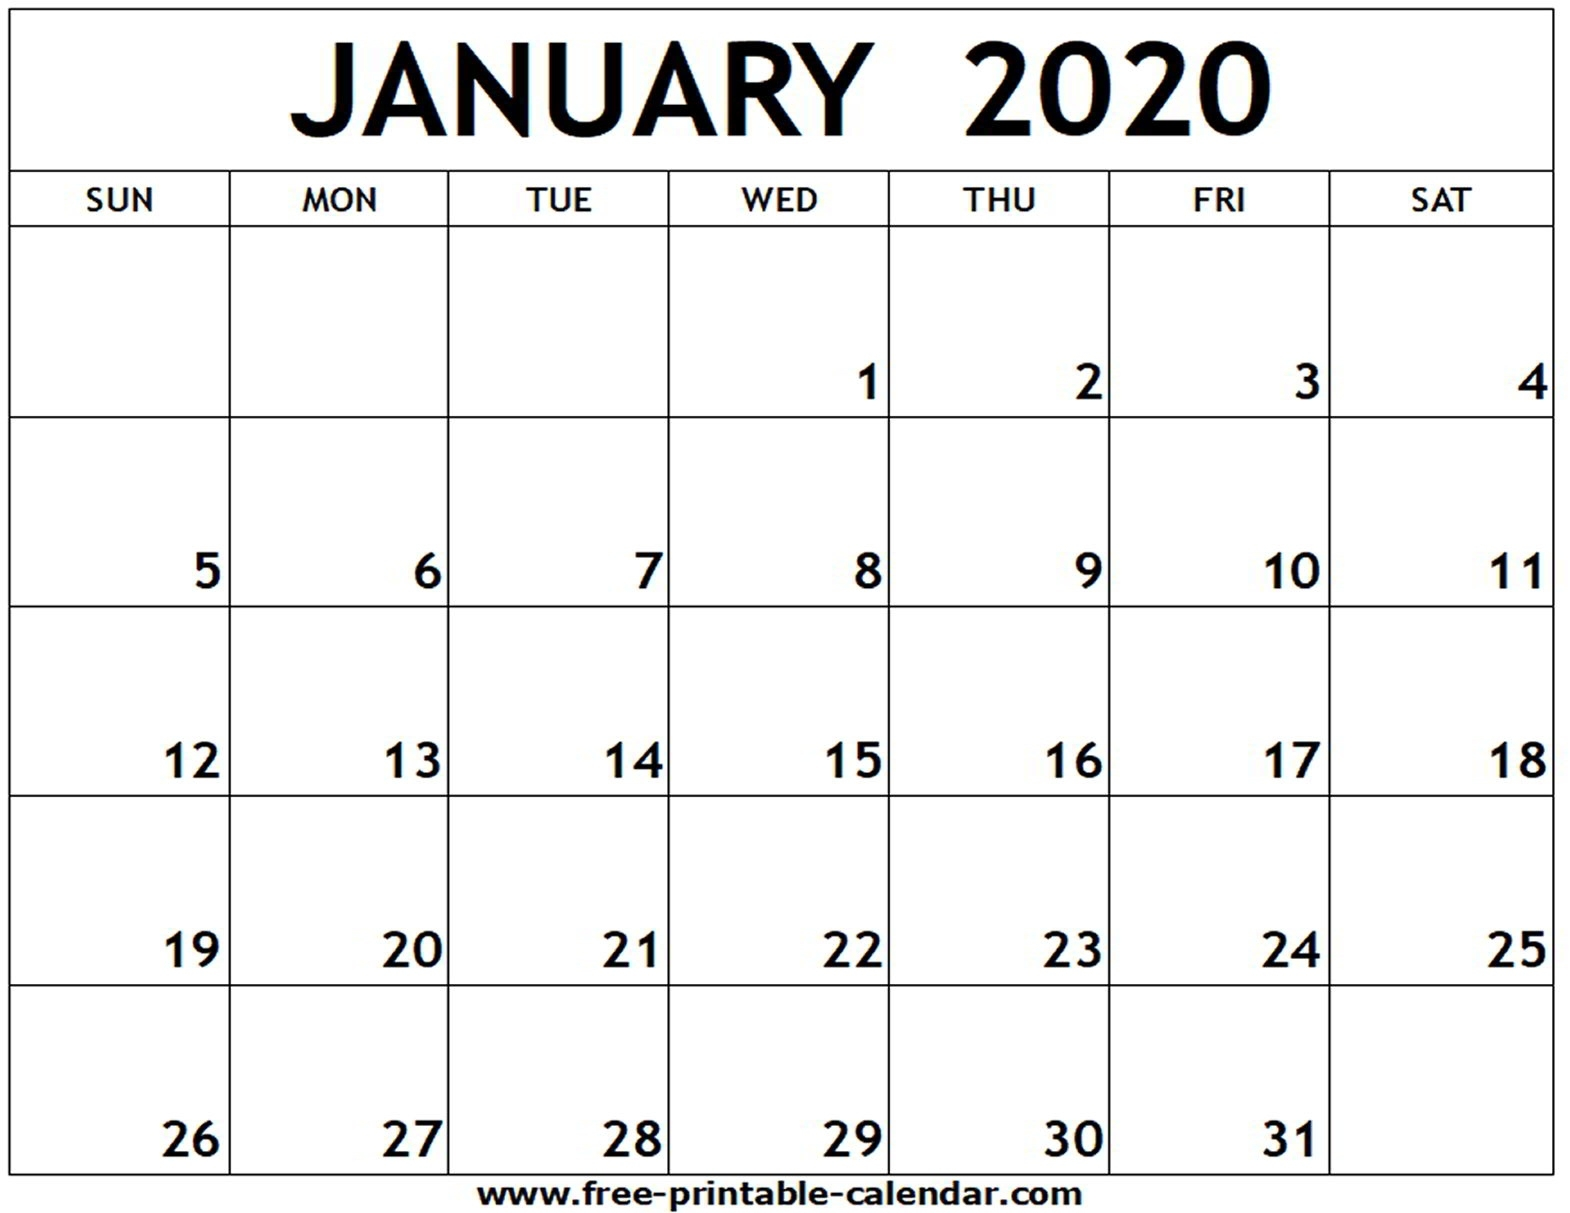 January 2020 Printable Calendar - Free-Printable-Calendar Extraordinary January 2020 Printable Calendar Canada